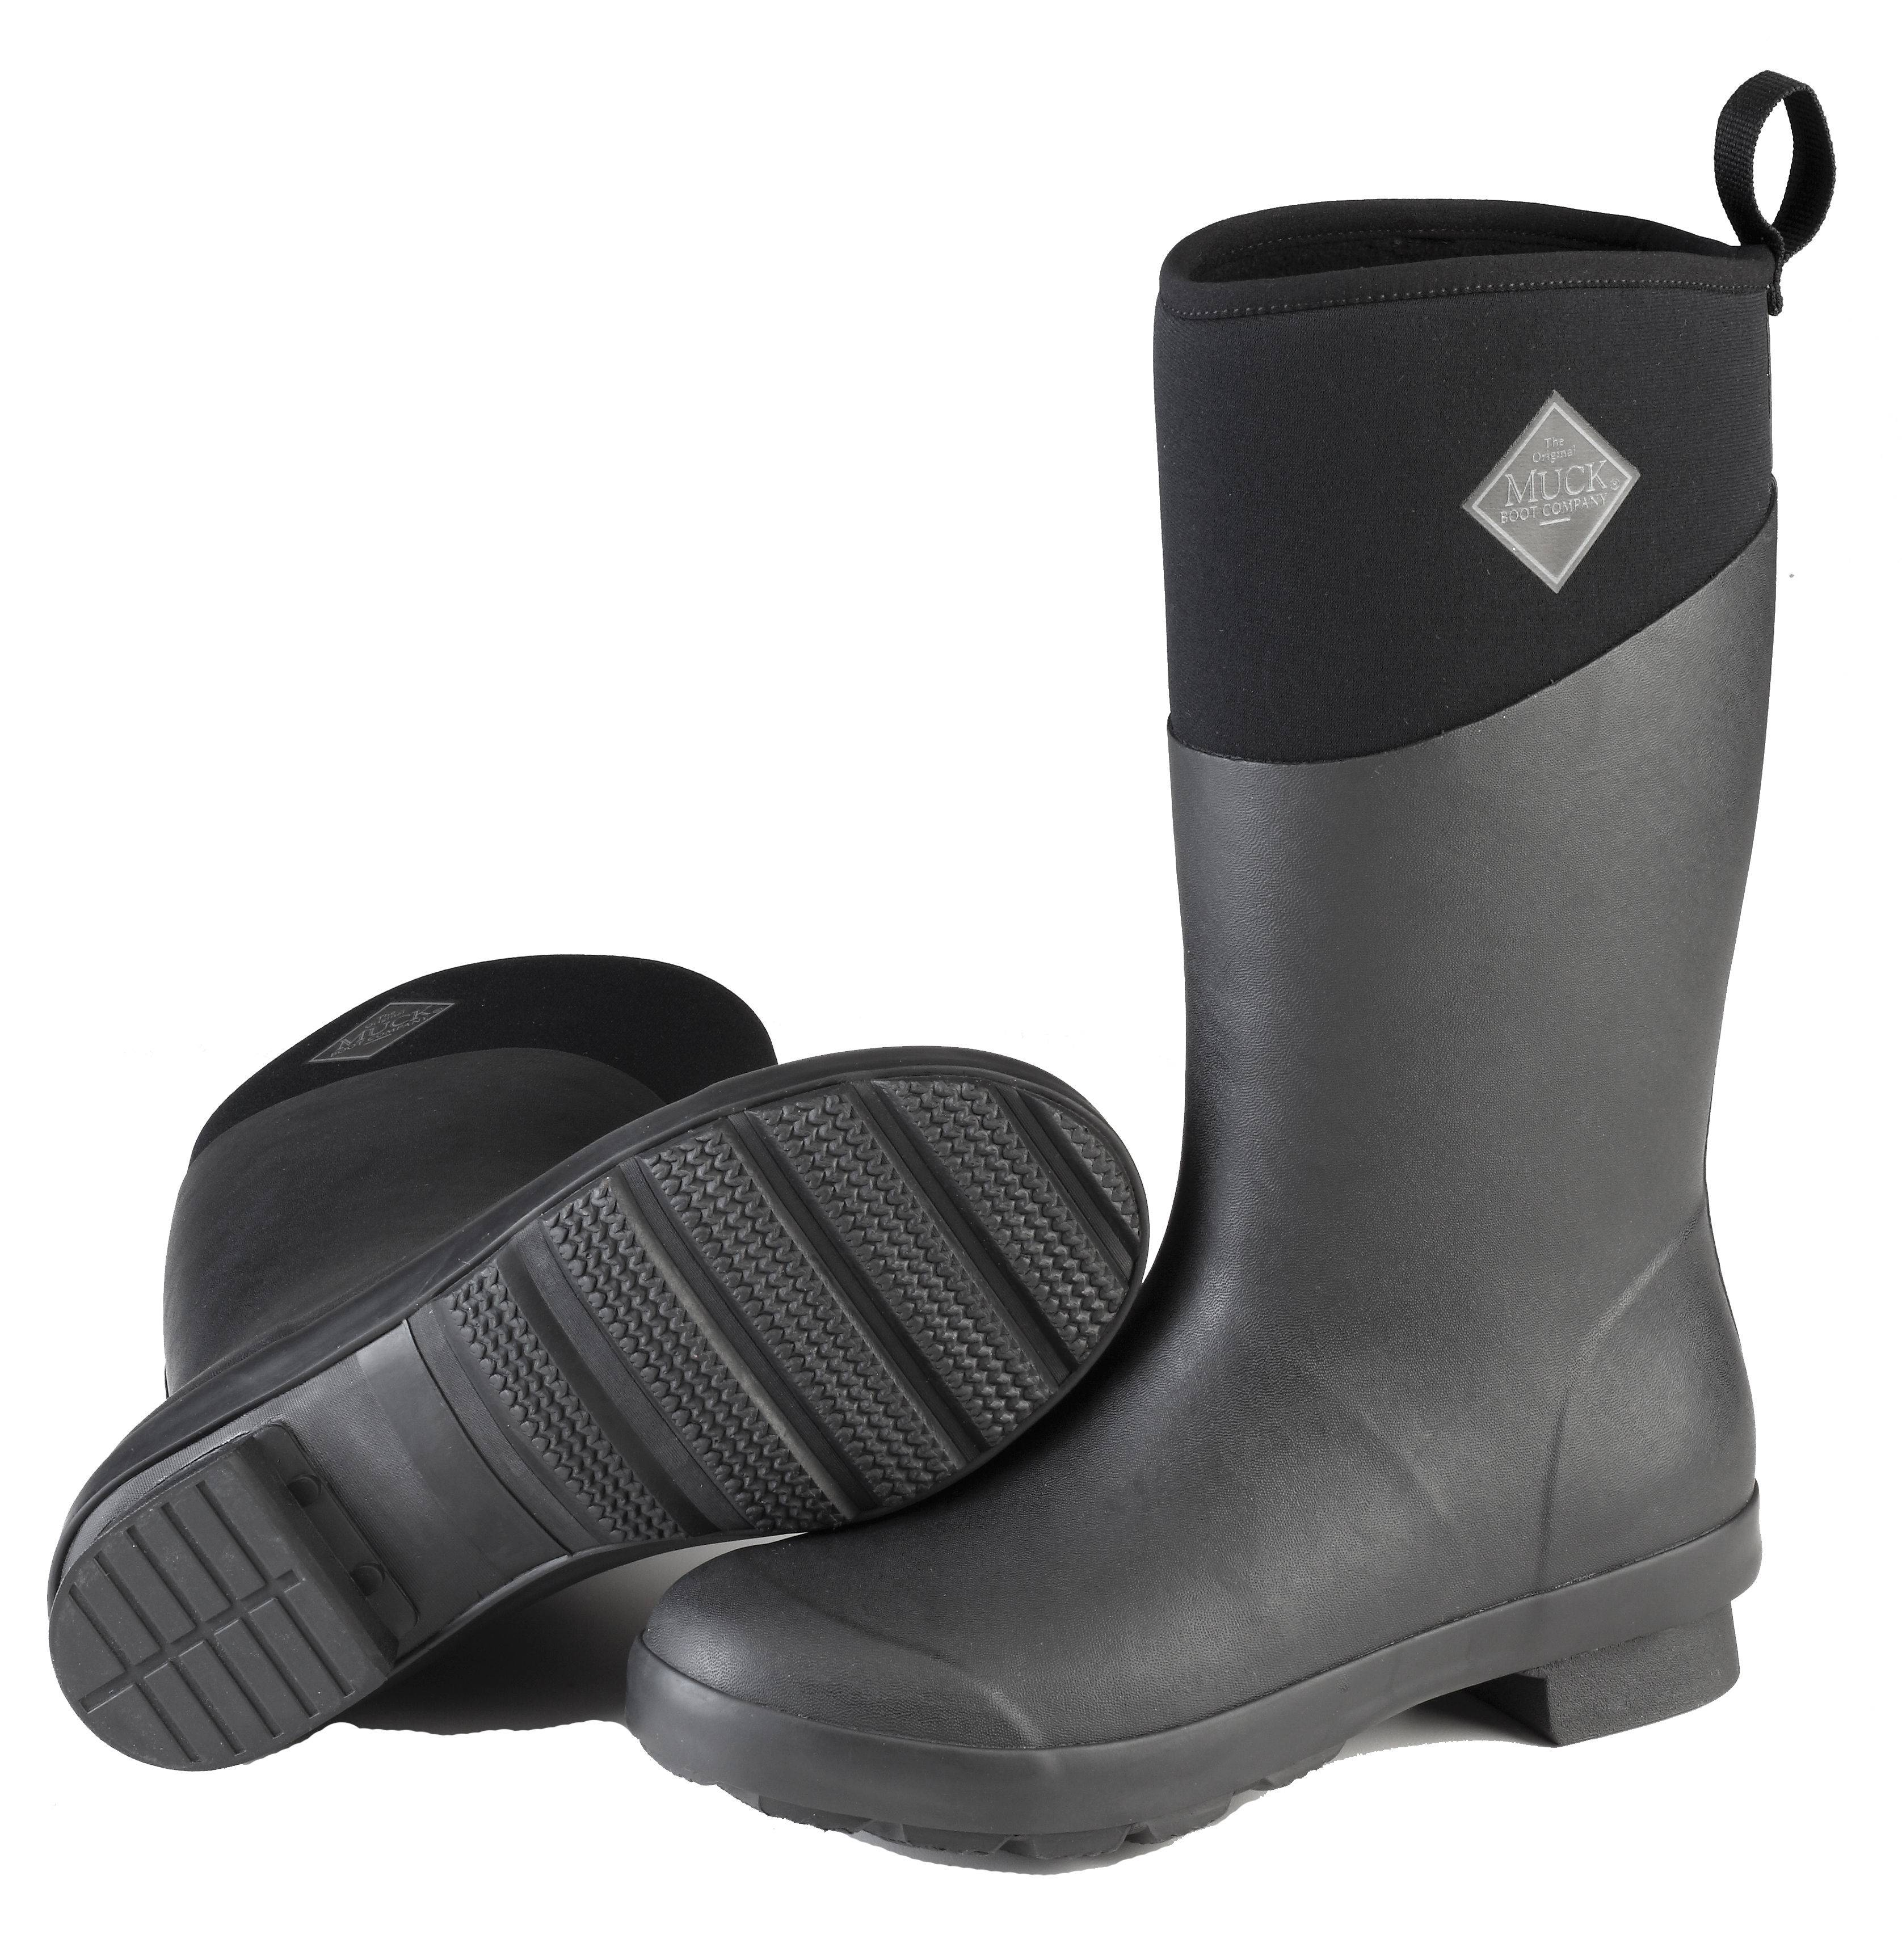 Muck Boots Tremont Mid Boot - Ladies - Black